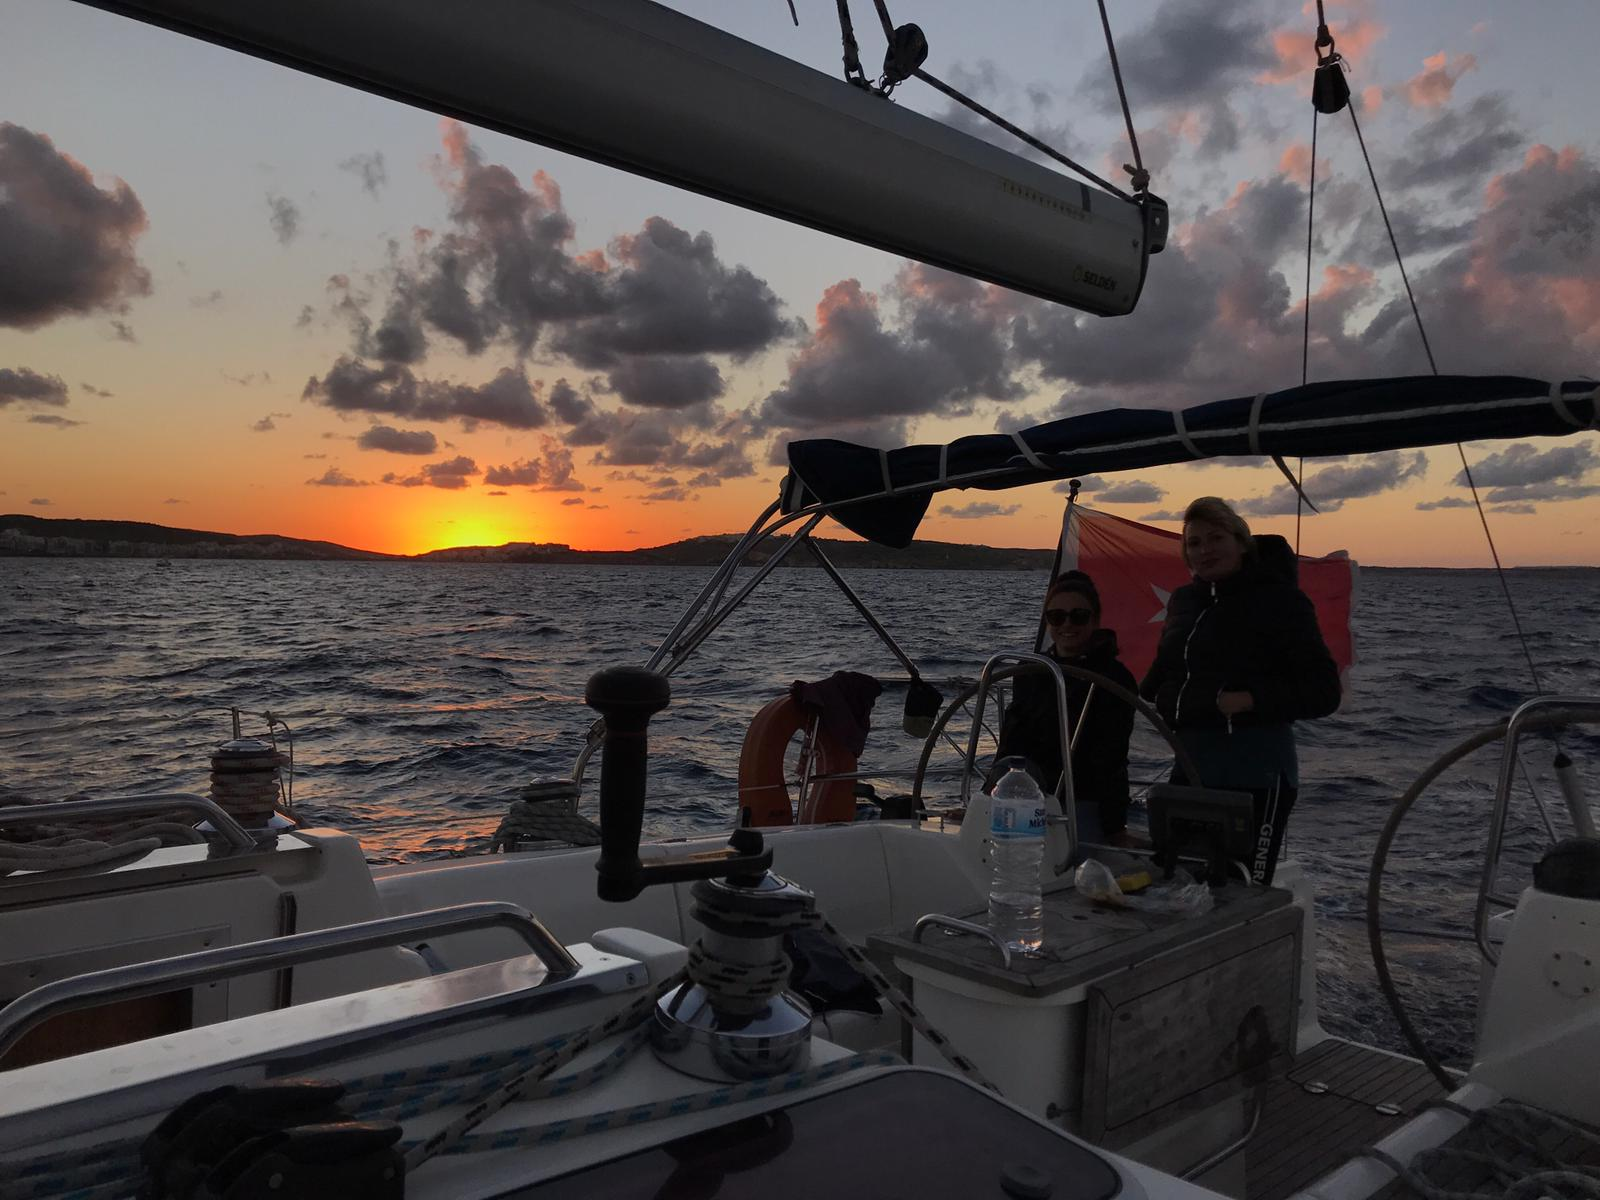 Sunset in malta on a sailing boat